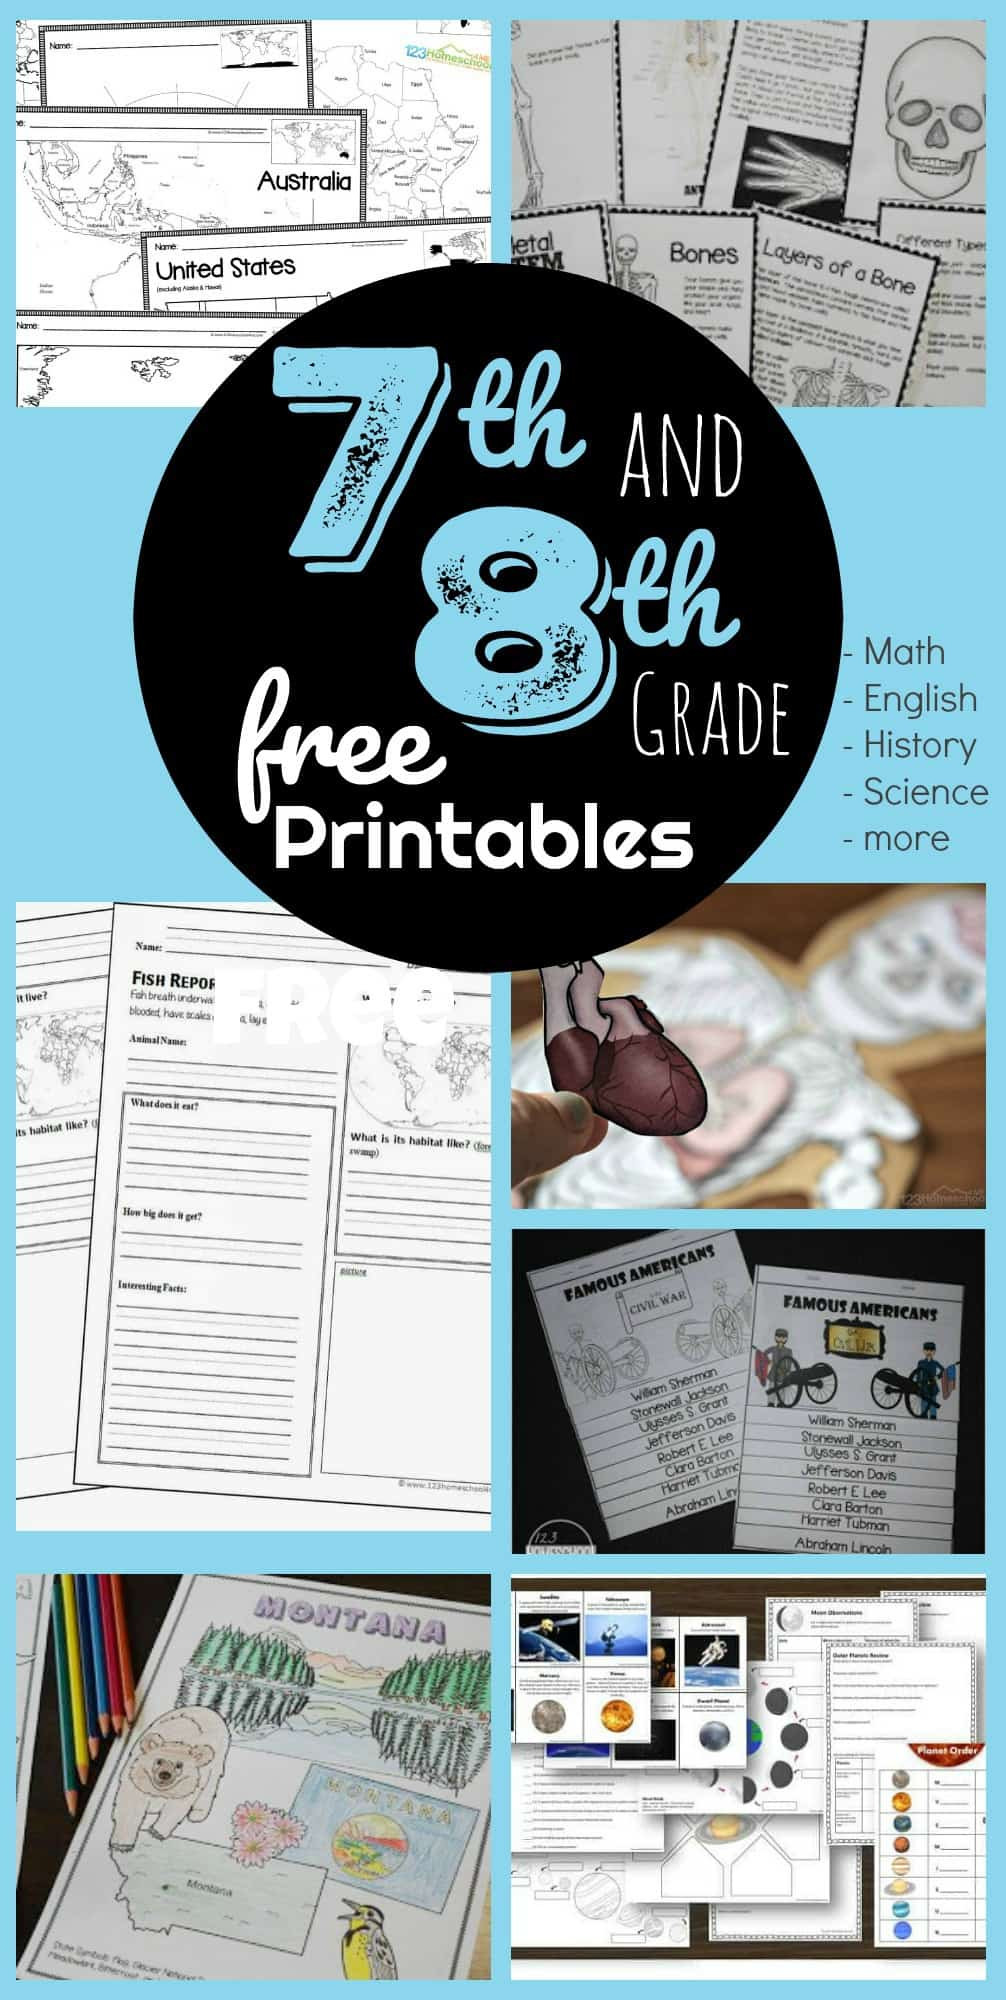 Eighth Grade Science Worksheets Free 7th & 8th Grade Worksheets